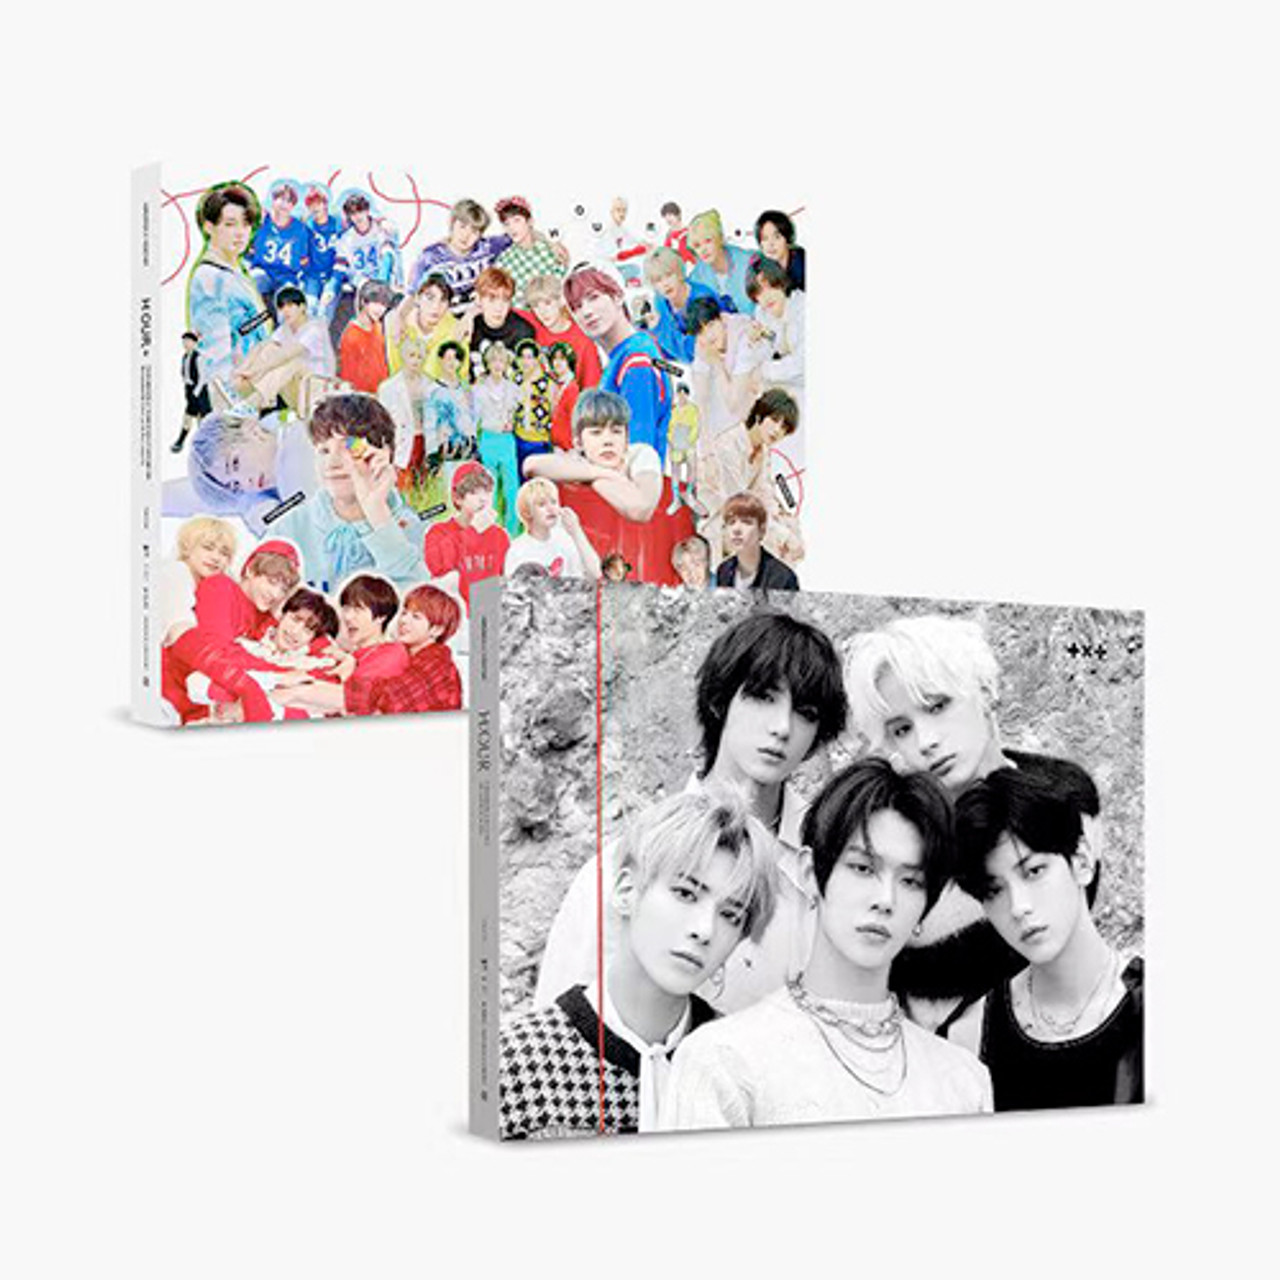 TXT-H:OUR 2VER SET (3RD PHOTOBOOK+Extended edition)+Weverse Gift